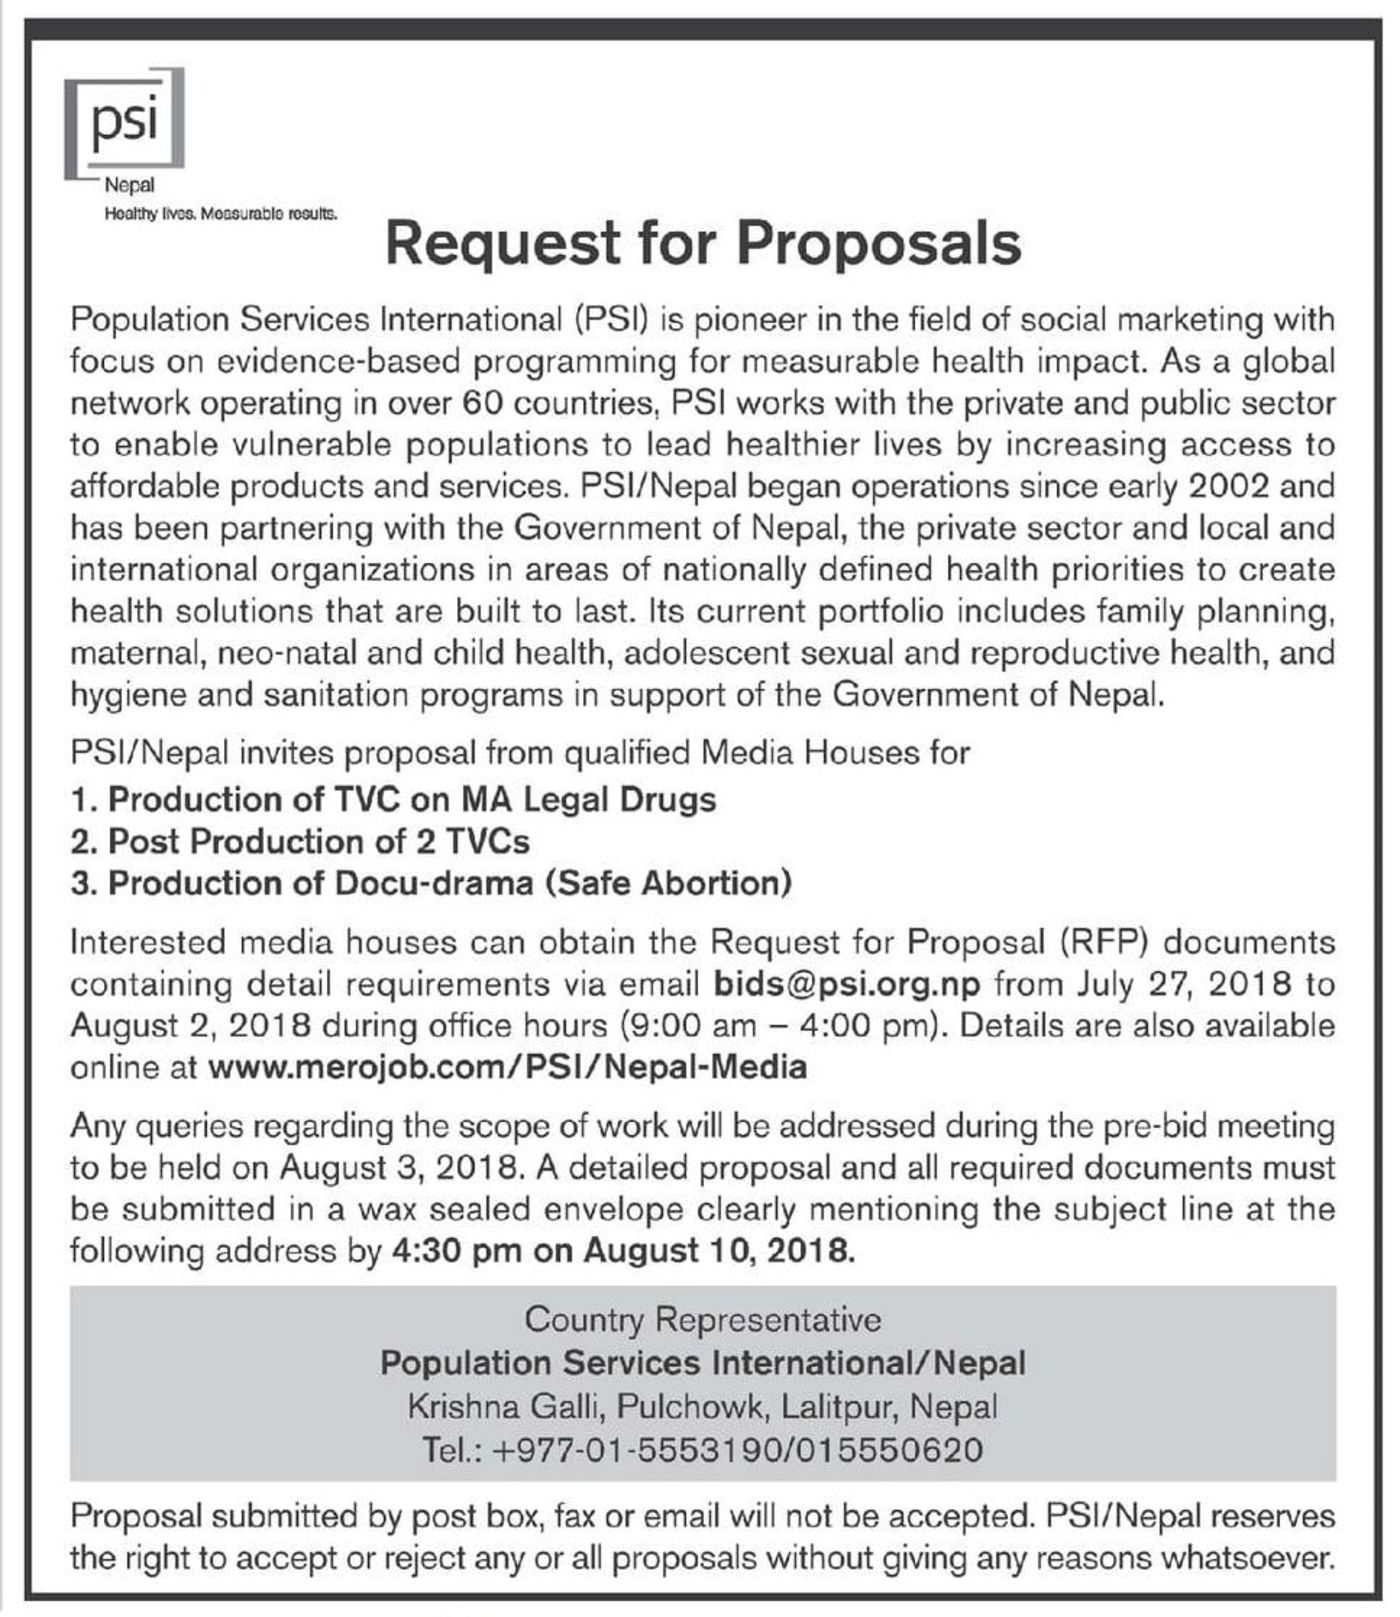 Bids and Tenders Nepal - RFP - Production of TVC on MA Legal Drugs